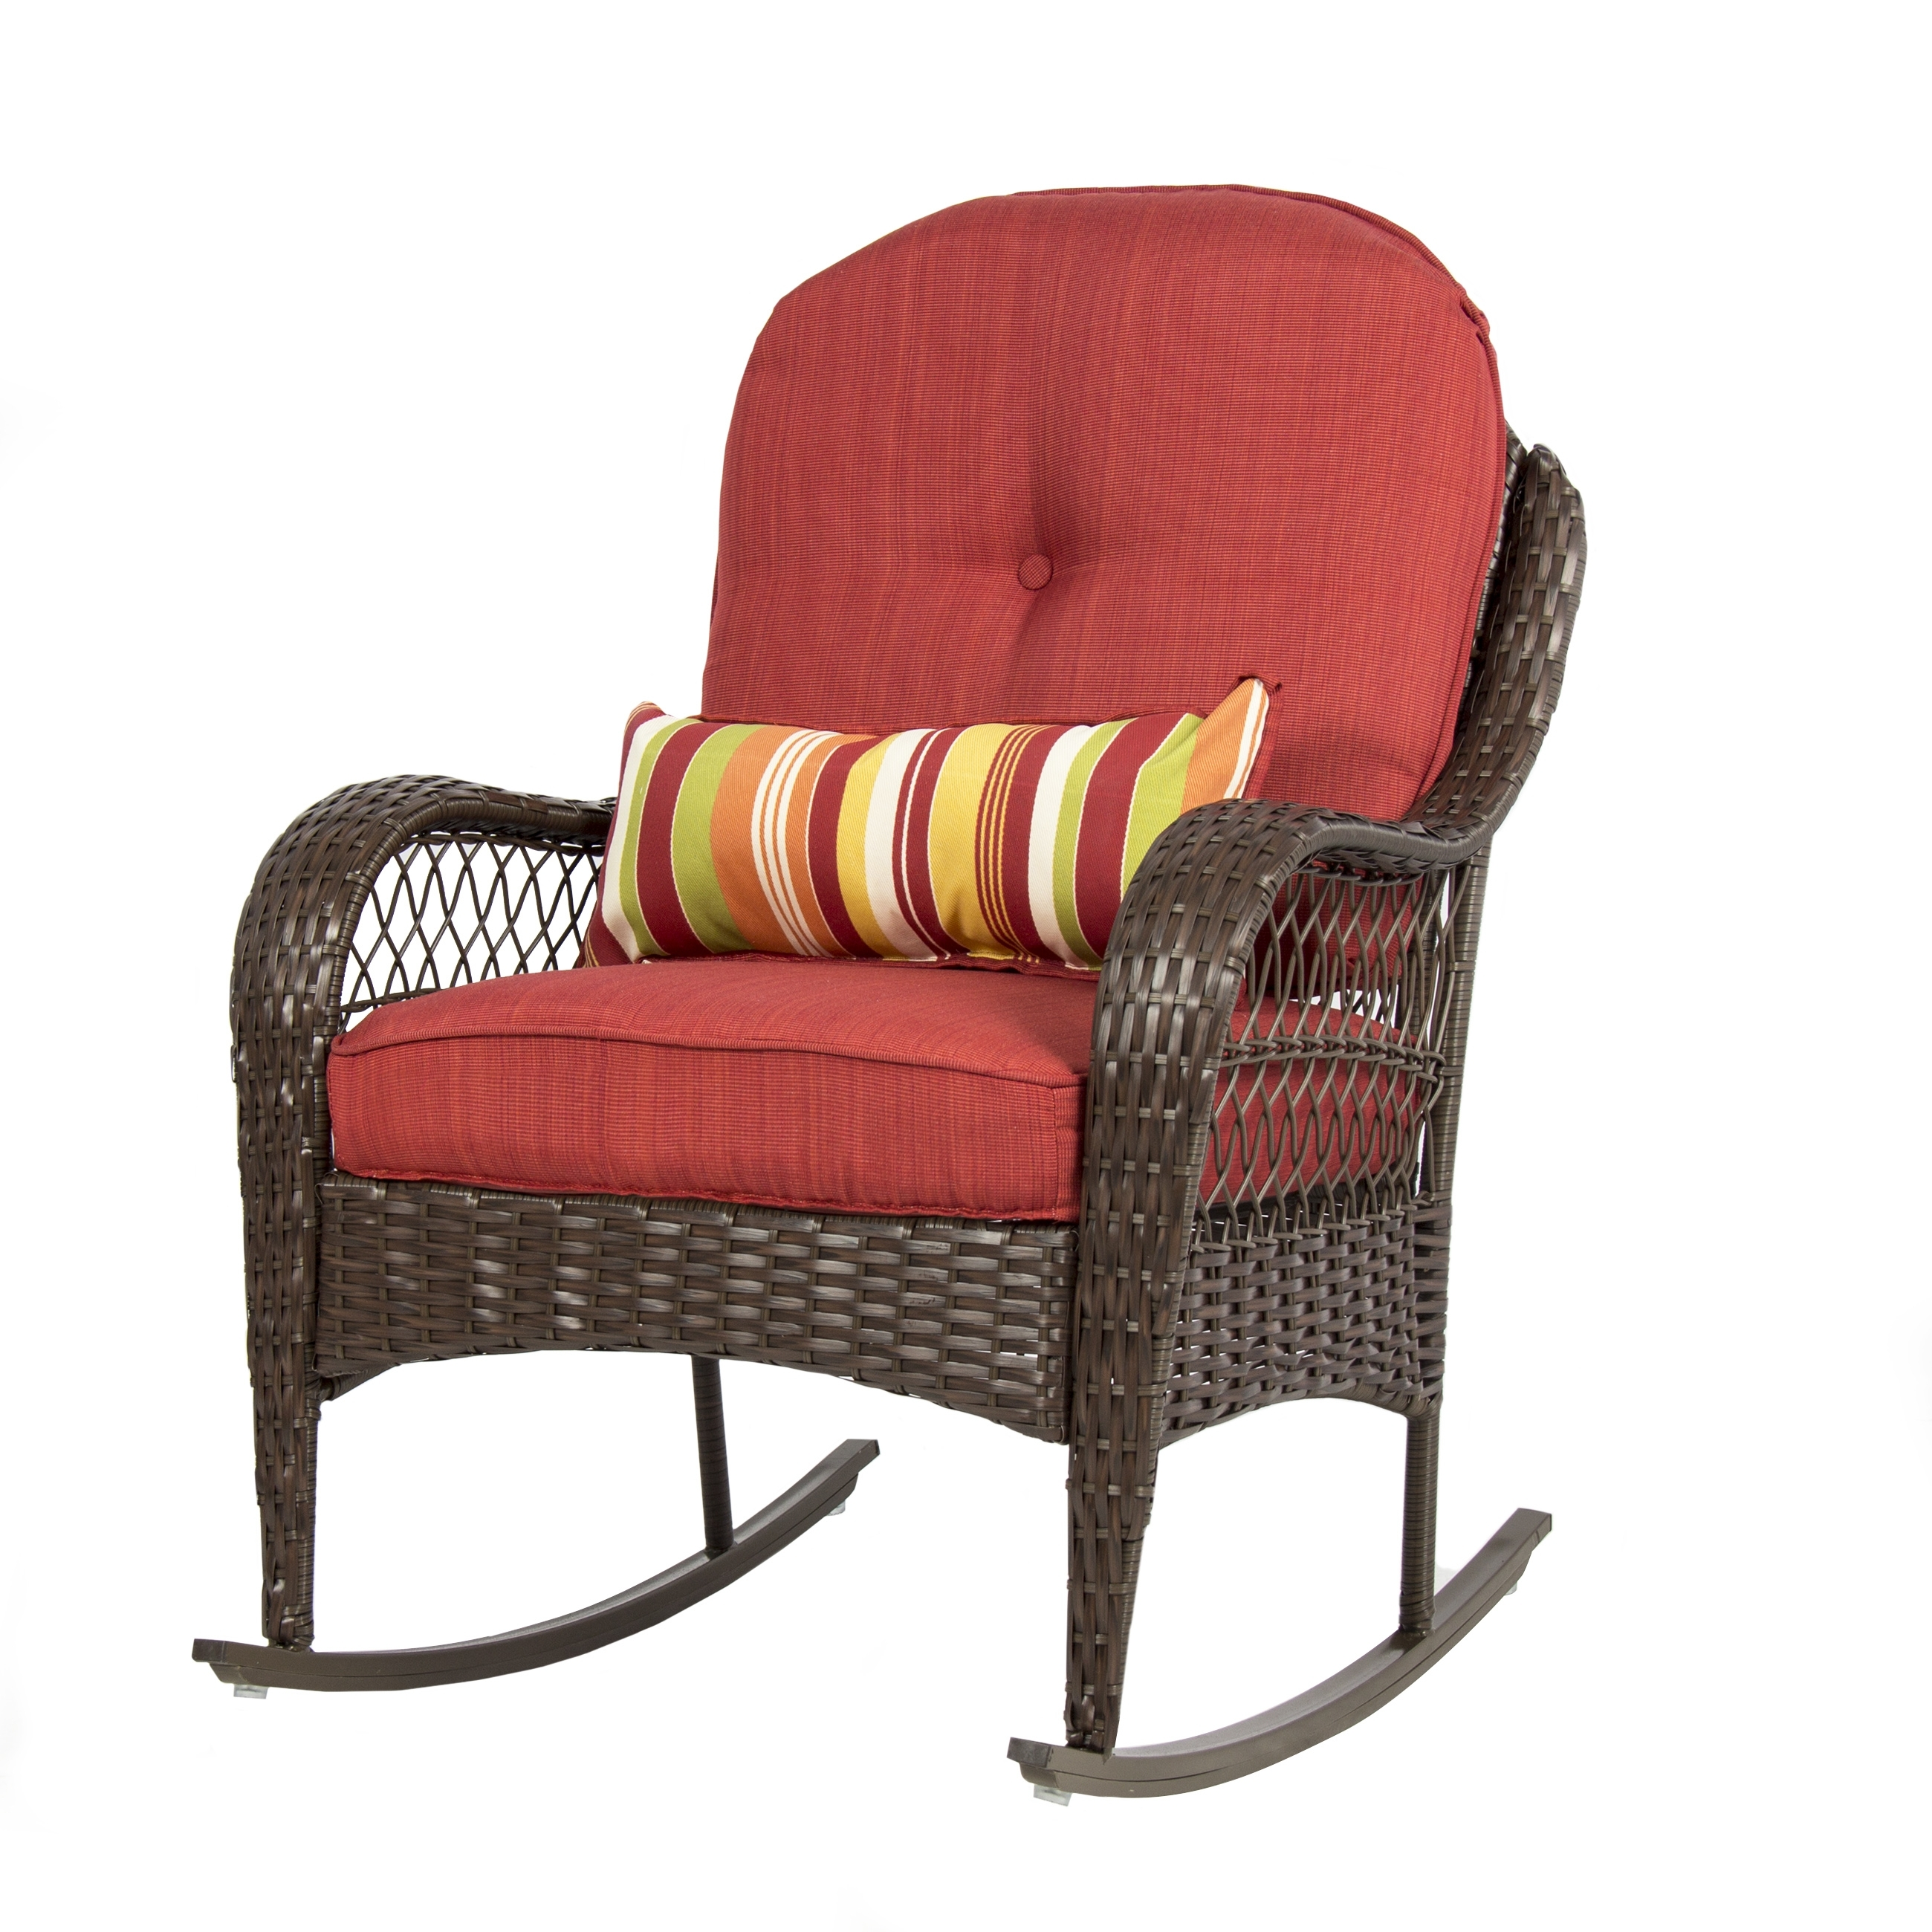 Fashionable Bestchoiceproducts: Best Choice Products Wicker Rocking Chair Patio In Padded Patio Rocking Chairs (View 3 of 15)